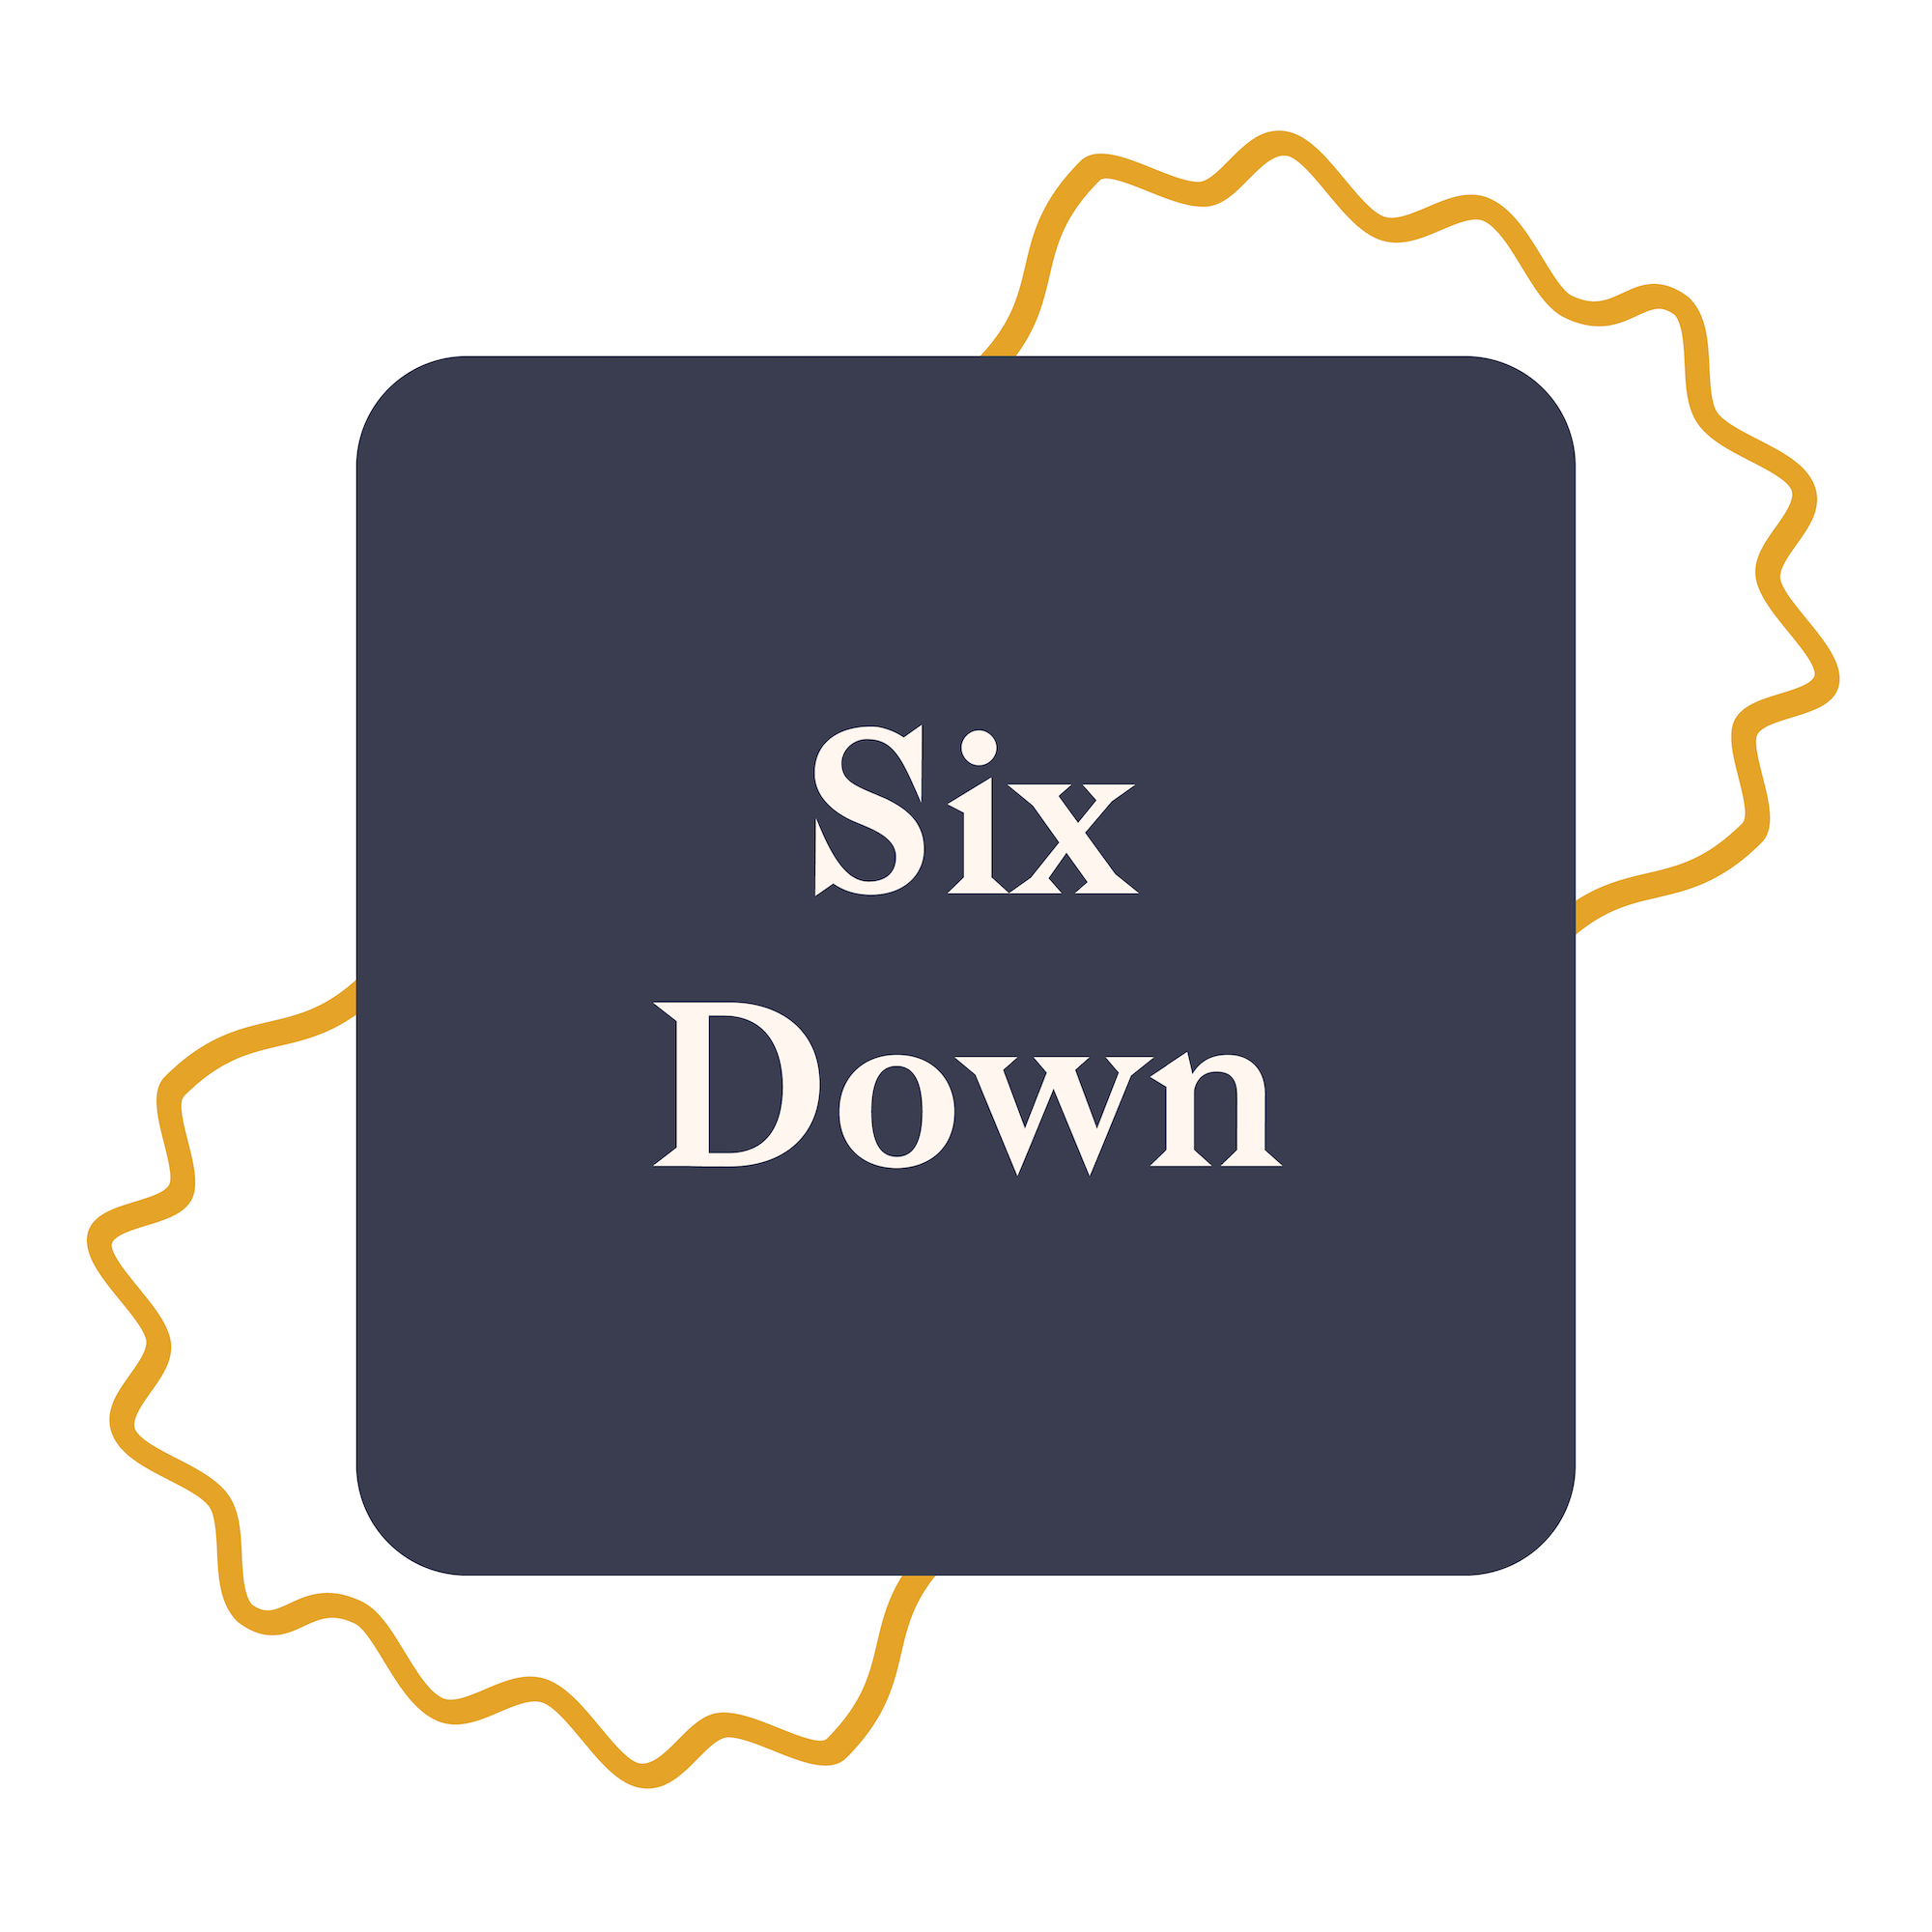 Six Down! - Fridays 12:00 pm with Jennie Monness